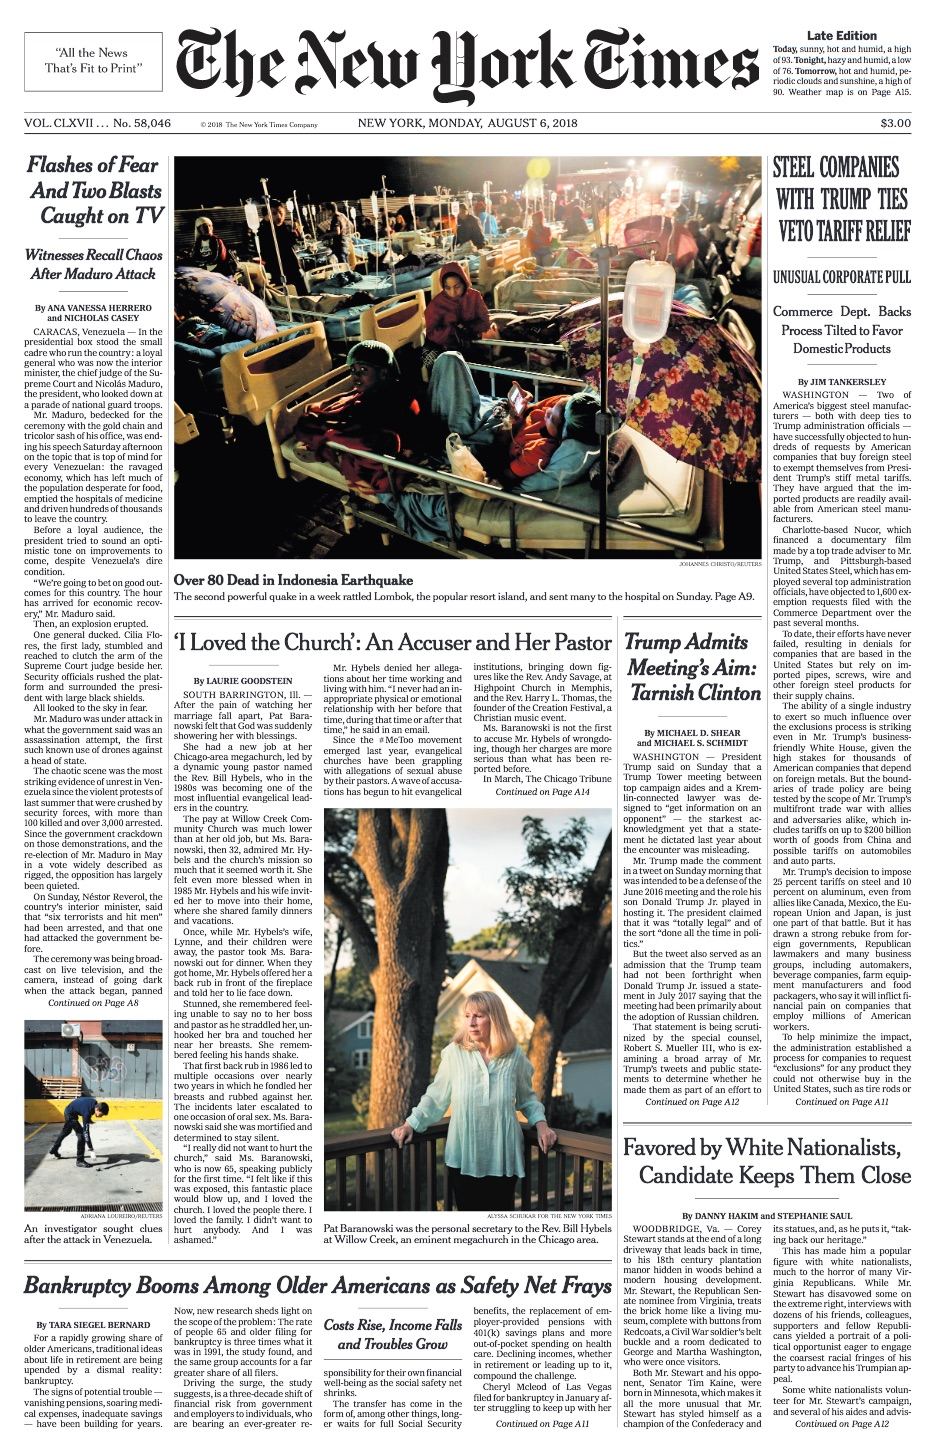 NYT_FrontPage_080618.jpg